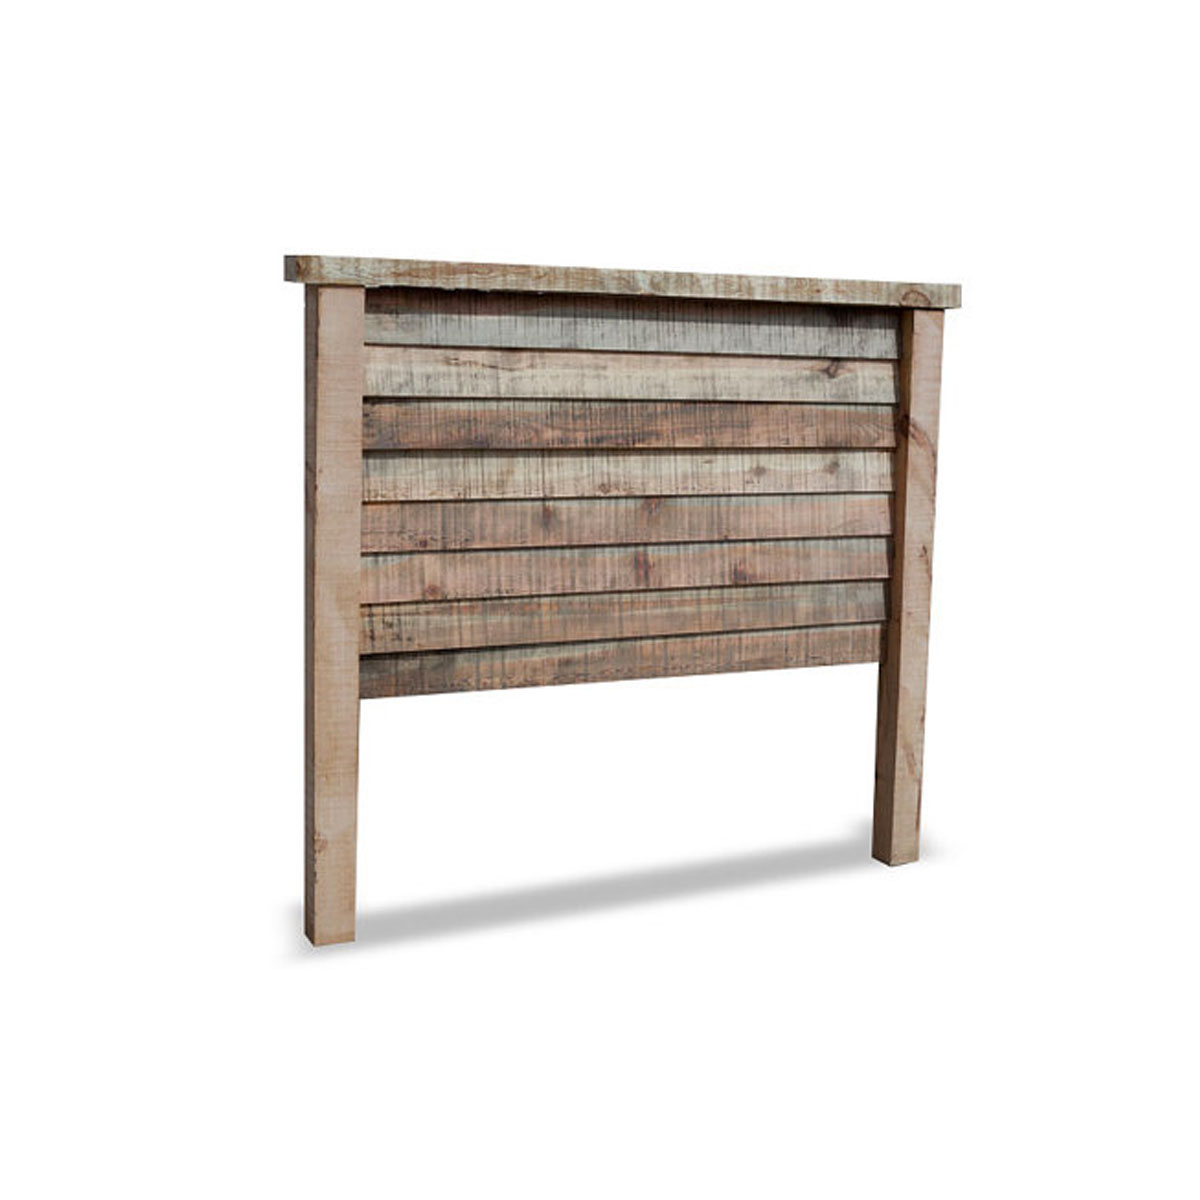 Purchase Natural Barnwood Bed Online Rustic Headboard